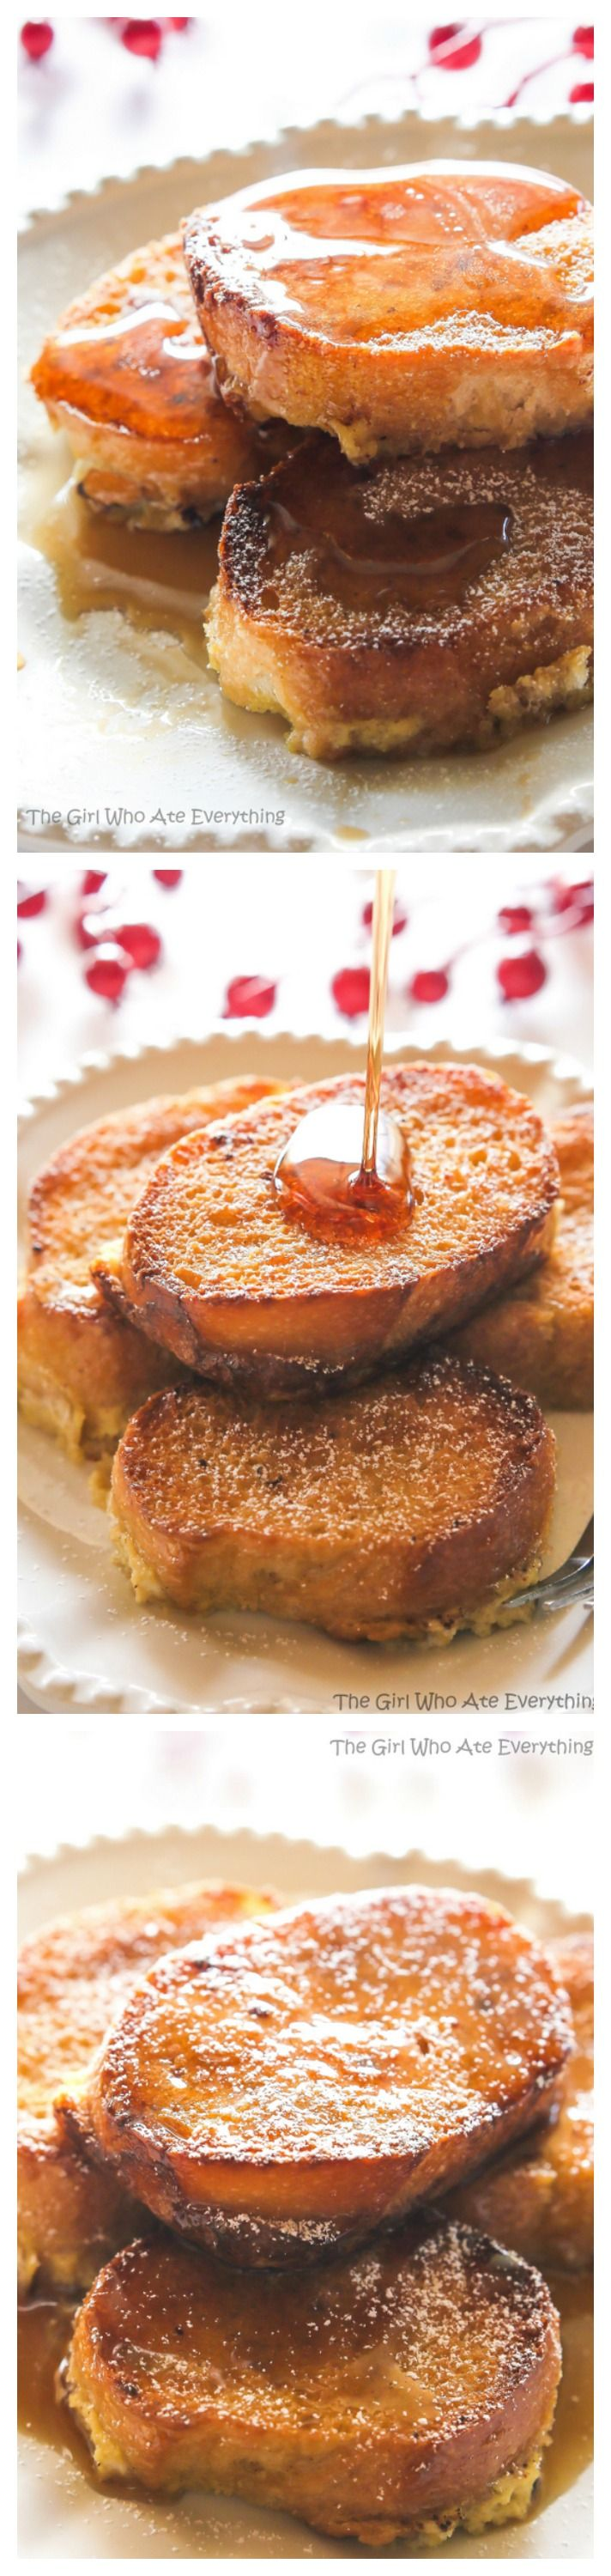 This Eggnog French Toast is bread soaked in an eggnog mixture and then baked in the morning. Festive and perfect for busy mornings like Christmas. the-girl-who-ate-everything.com